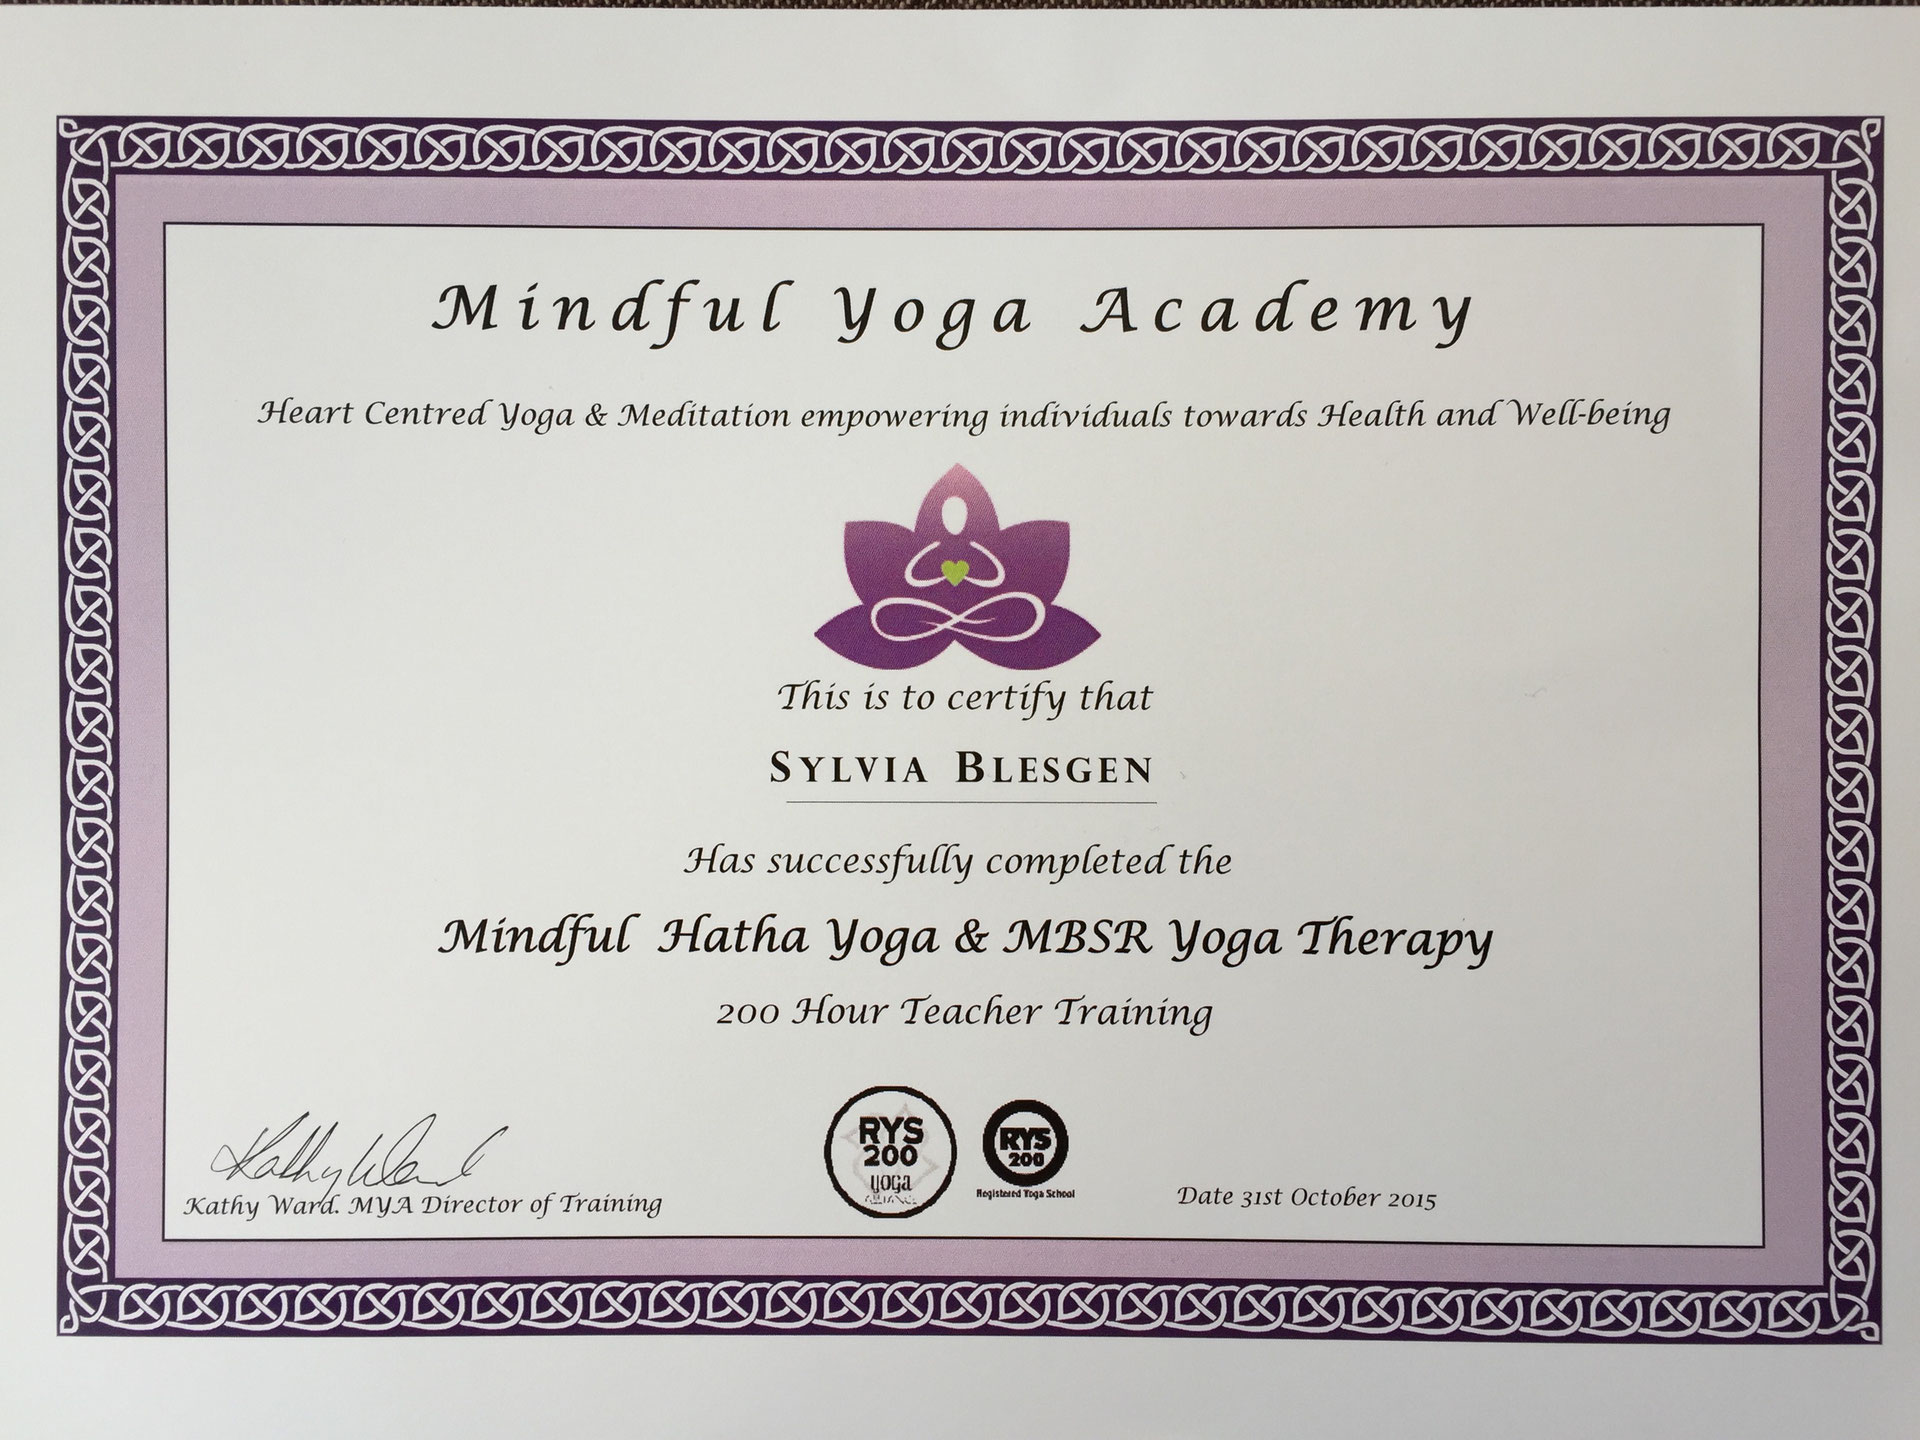 yoga certificate therapy mindful youlead hatha mbsr teacher format